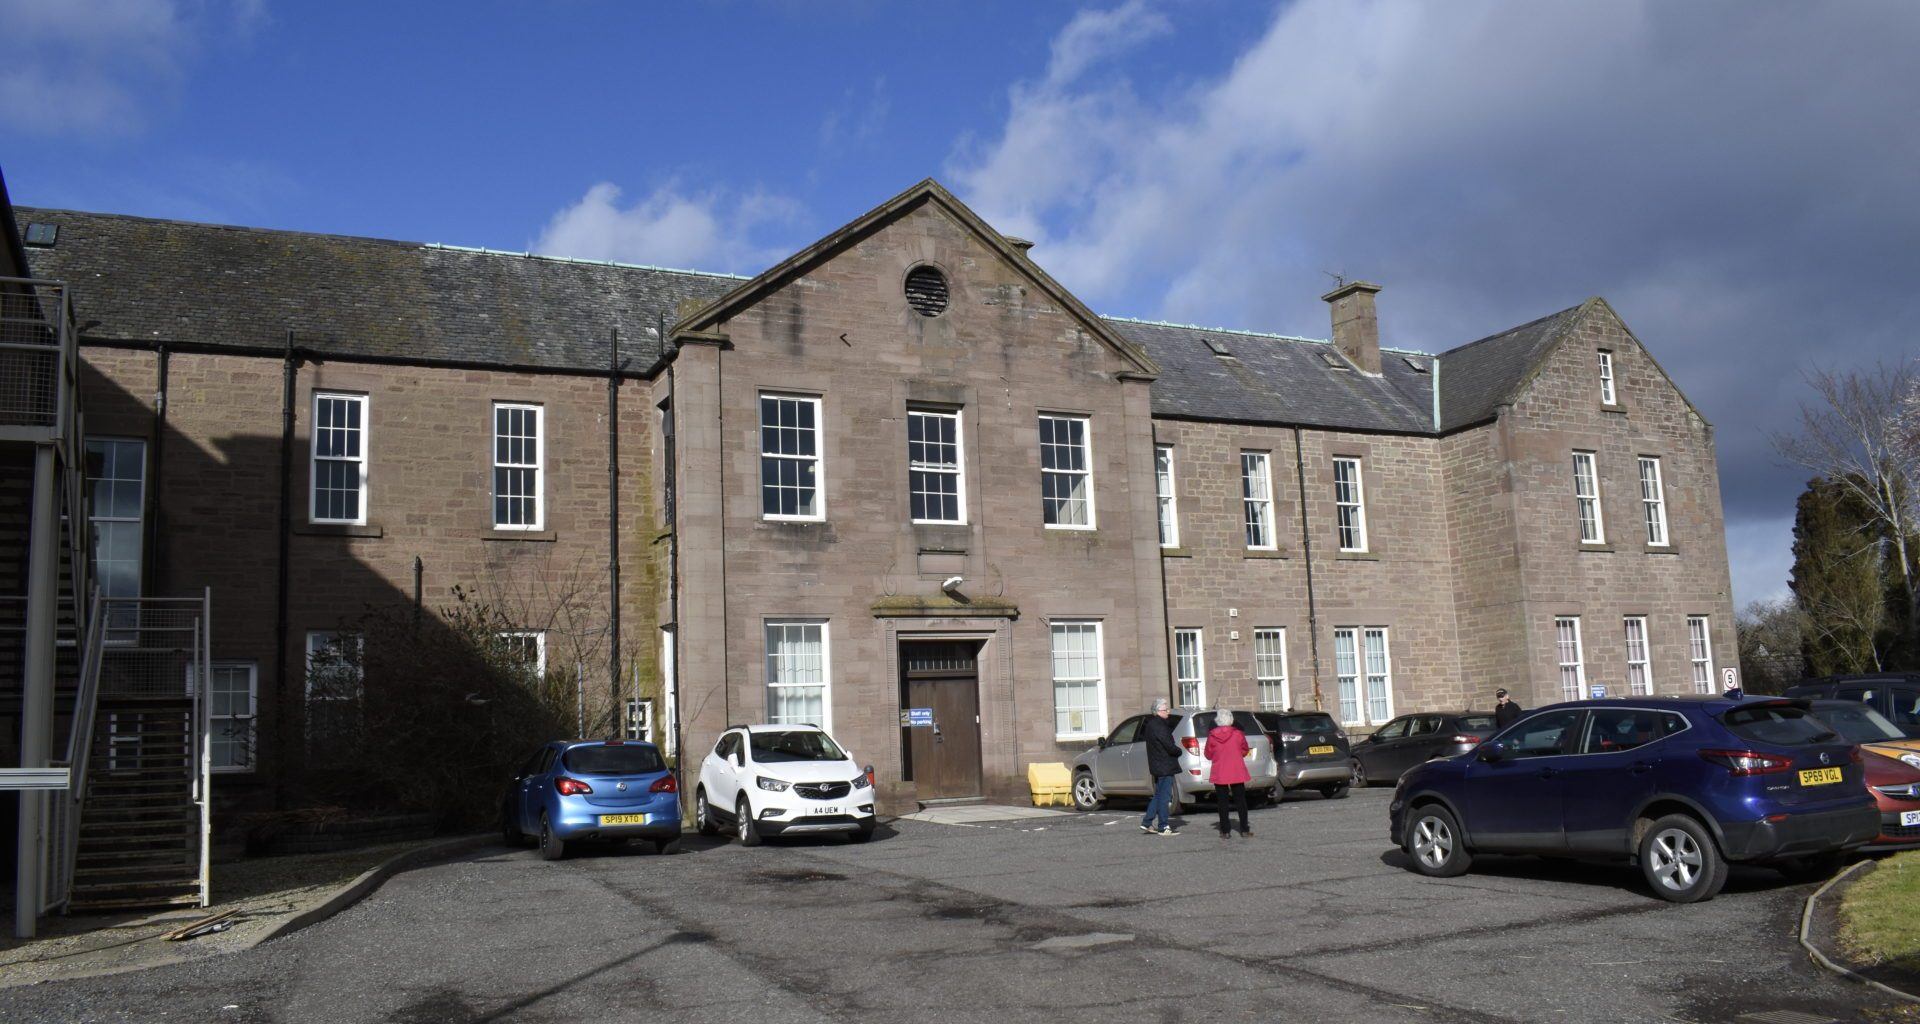 NHS Tayside stalls community plans for abandoned infirmary 8